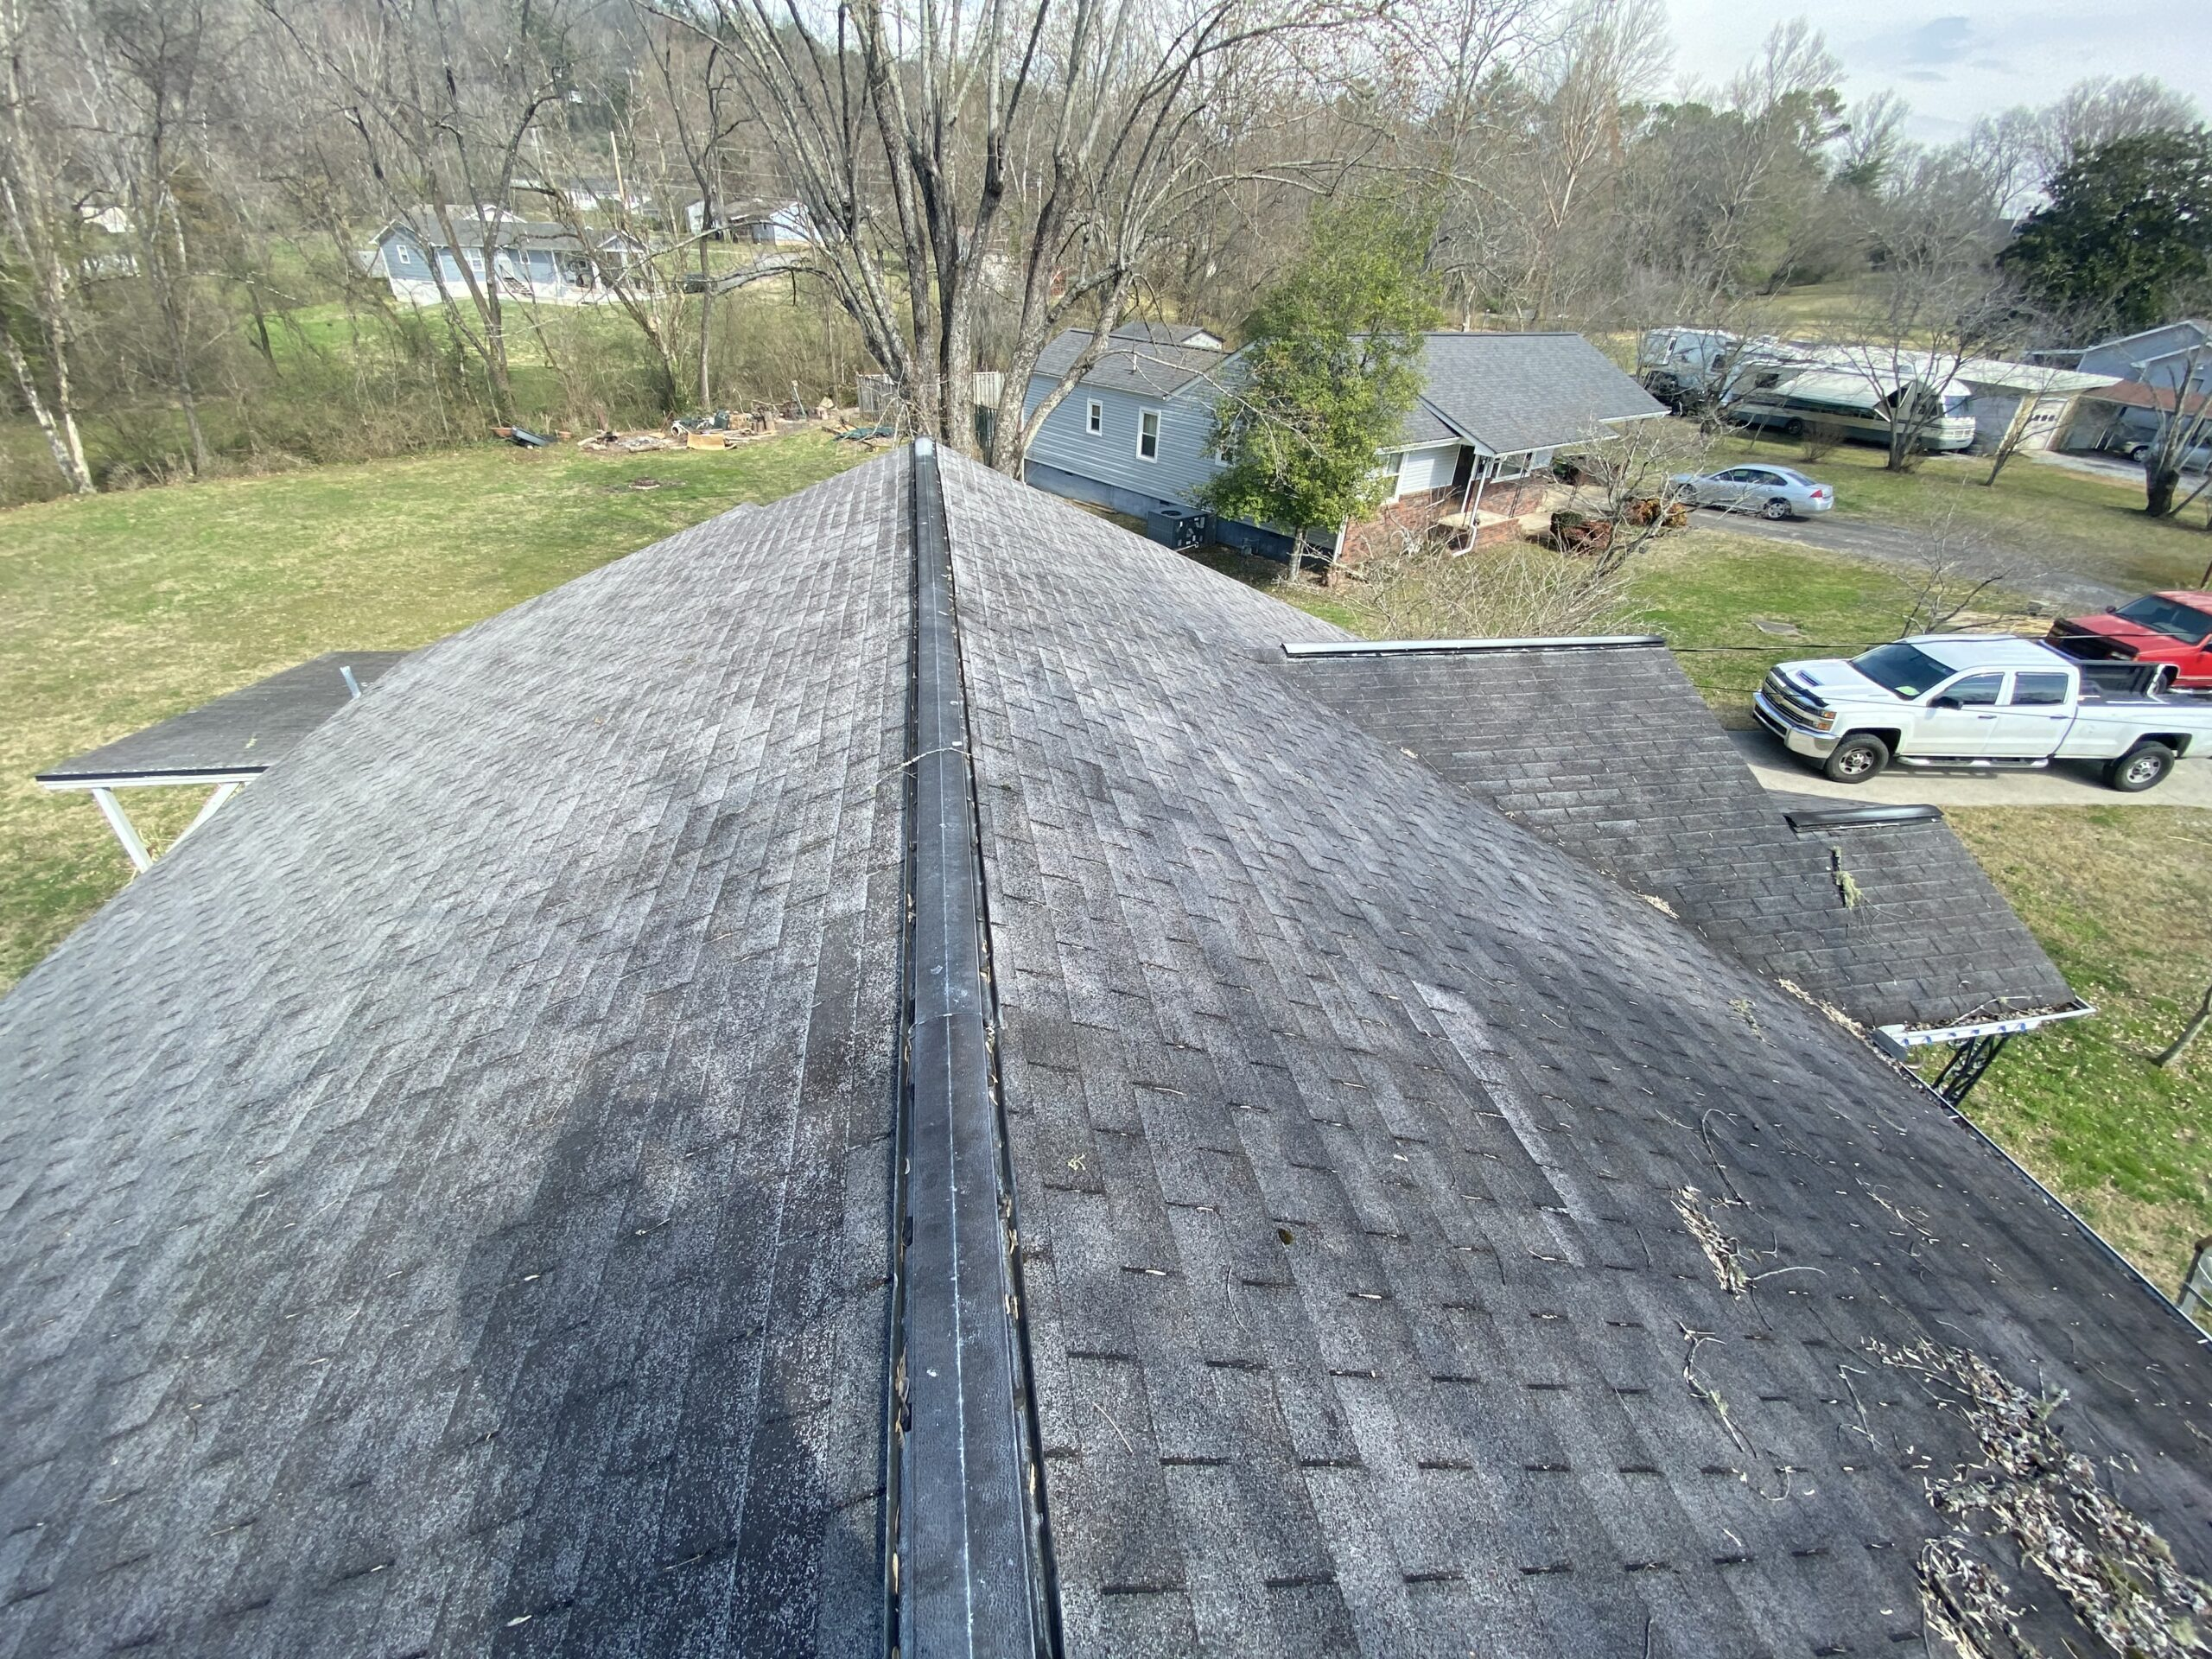 This is a picture of an old black three tab roof